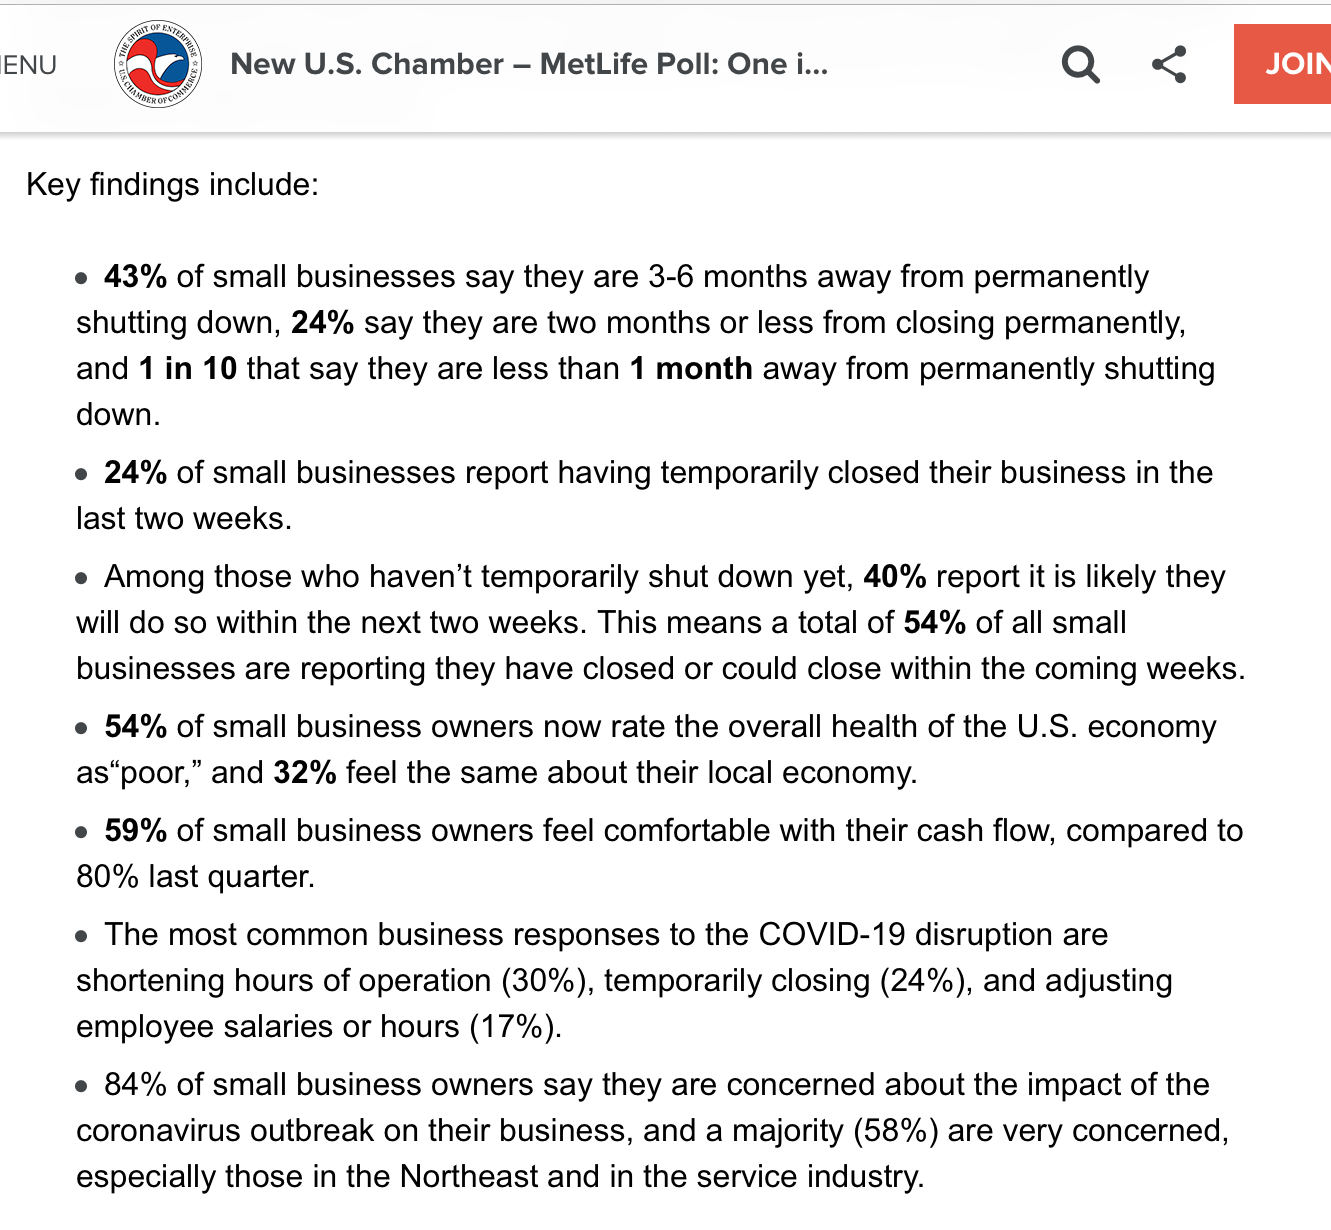 Congress and Corporations Join Forces To Crush American Small Business 4